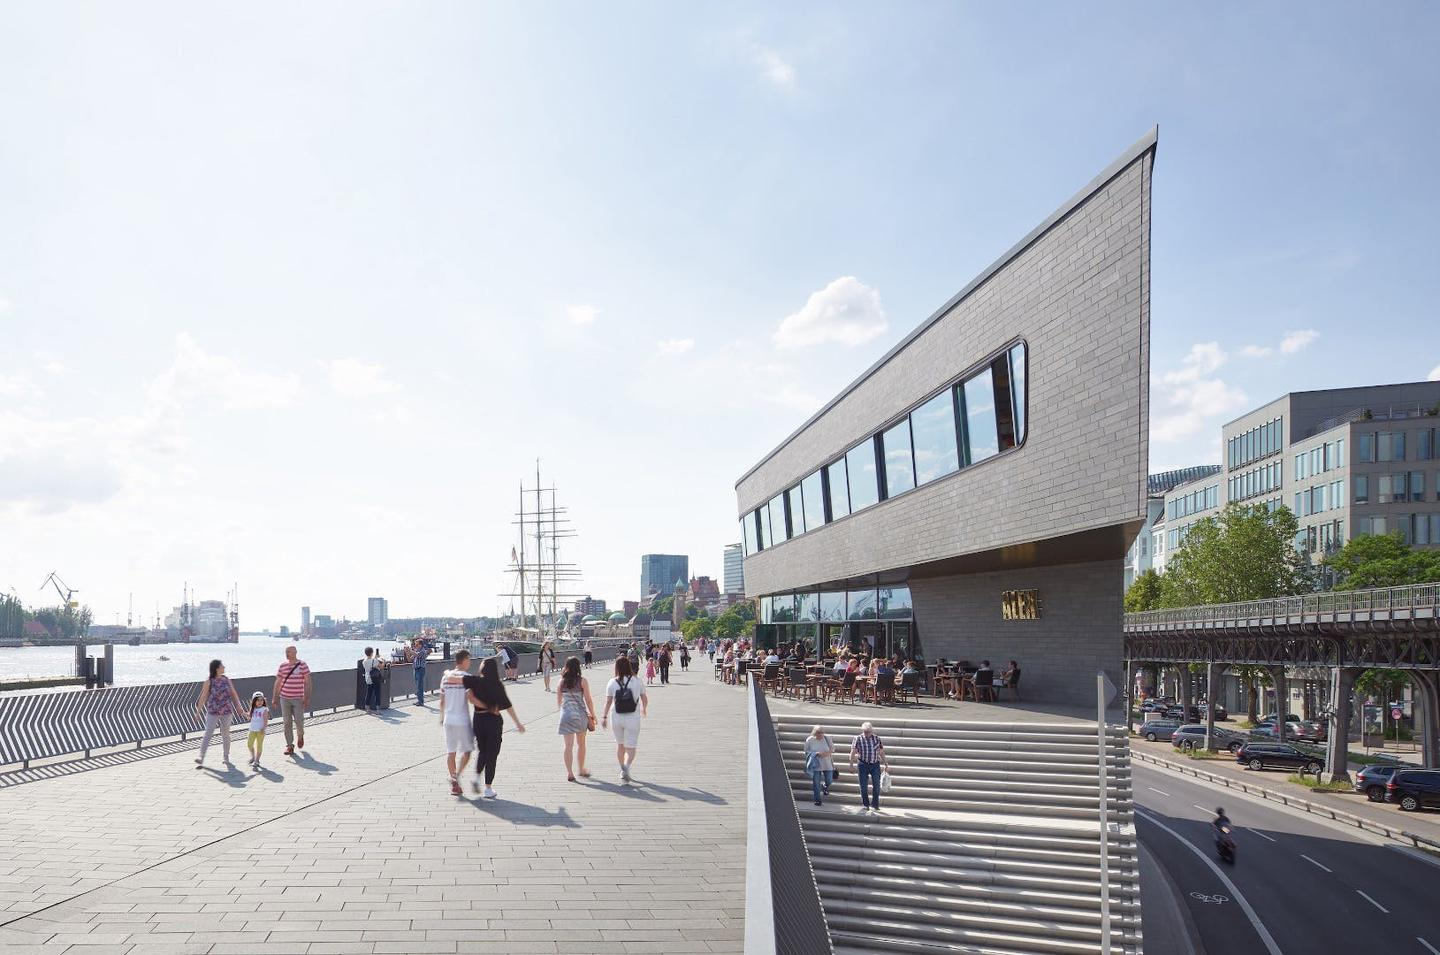 The Niederhafen River Promenade's cantilevering restaurant is three stories tall